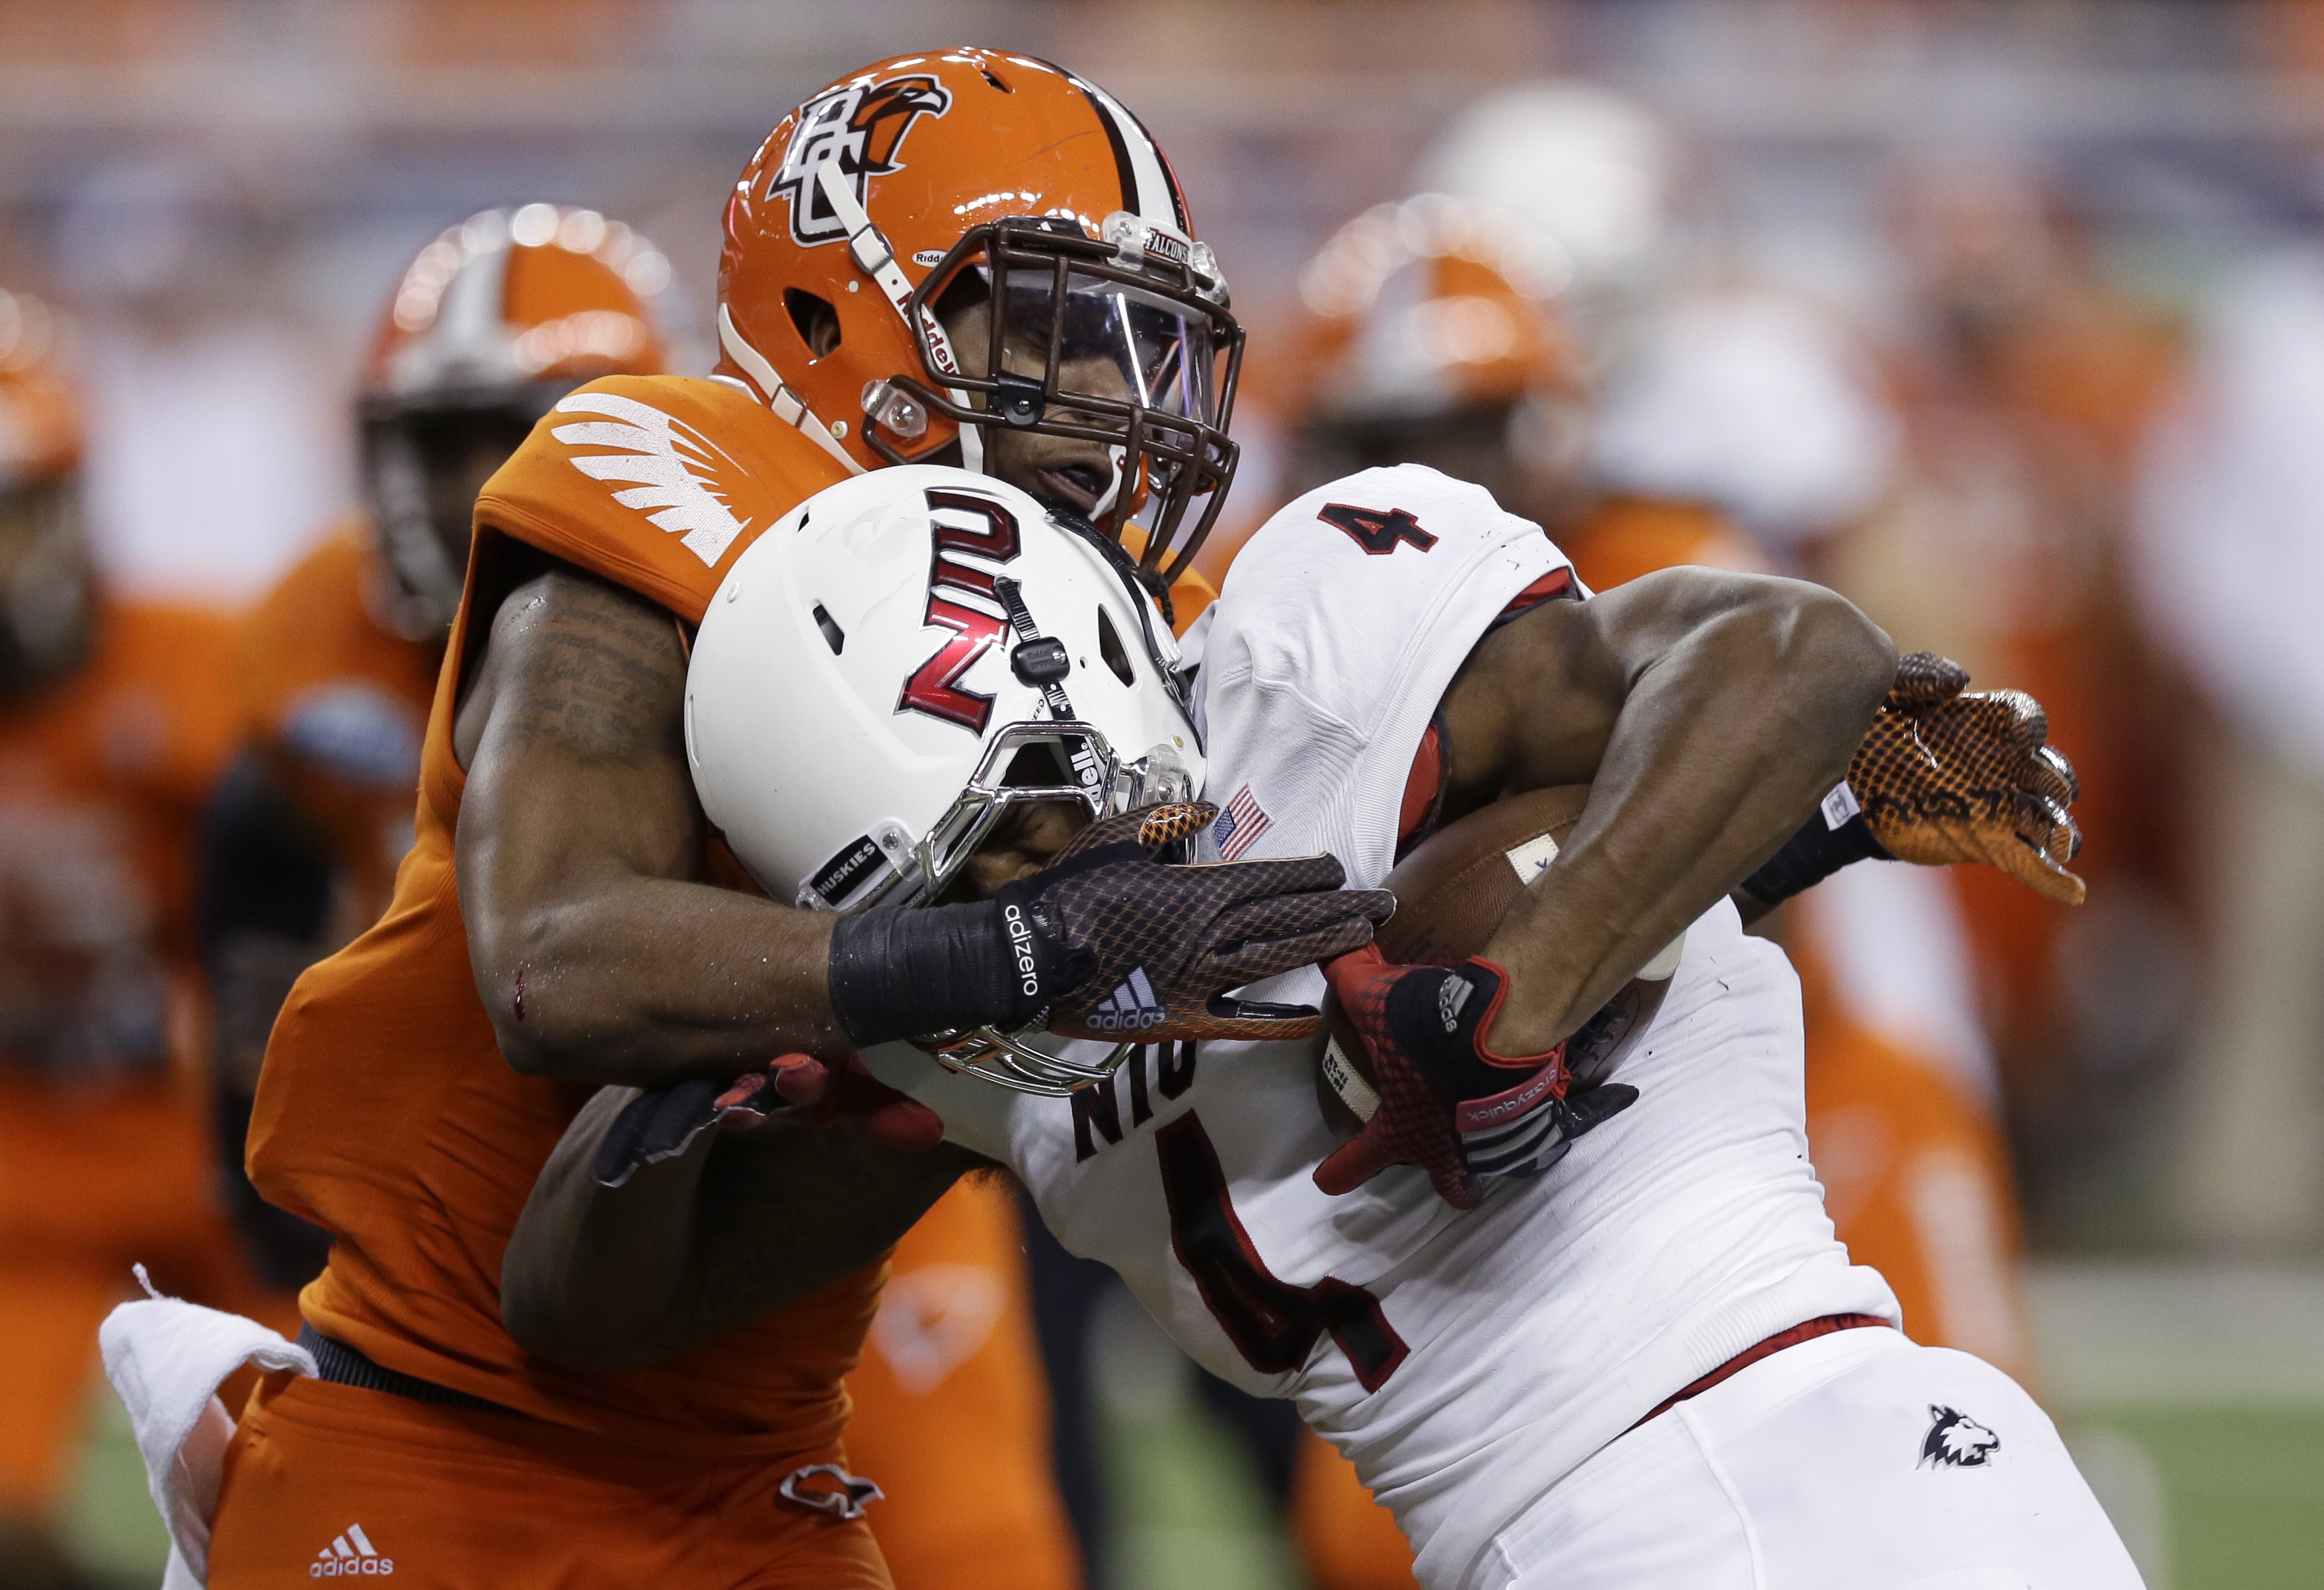 FILE - In this Dec. 5, 2014 file photo, Northern Illinois wide receiver Da'Ron Brown (4) is tackled by Bowling Green defensive back Brian Sutton (3) during the first half of the Mid-American Conference championship NCAA college football game in Detroit. B